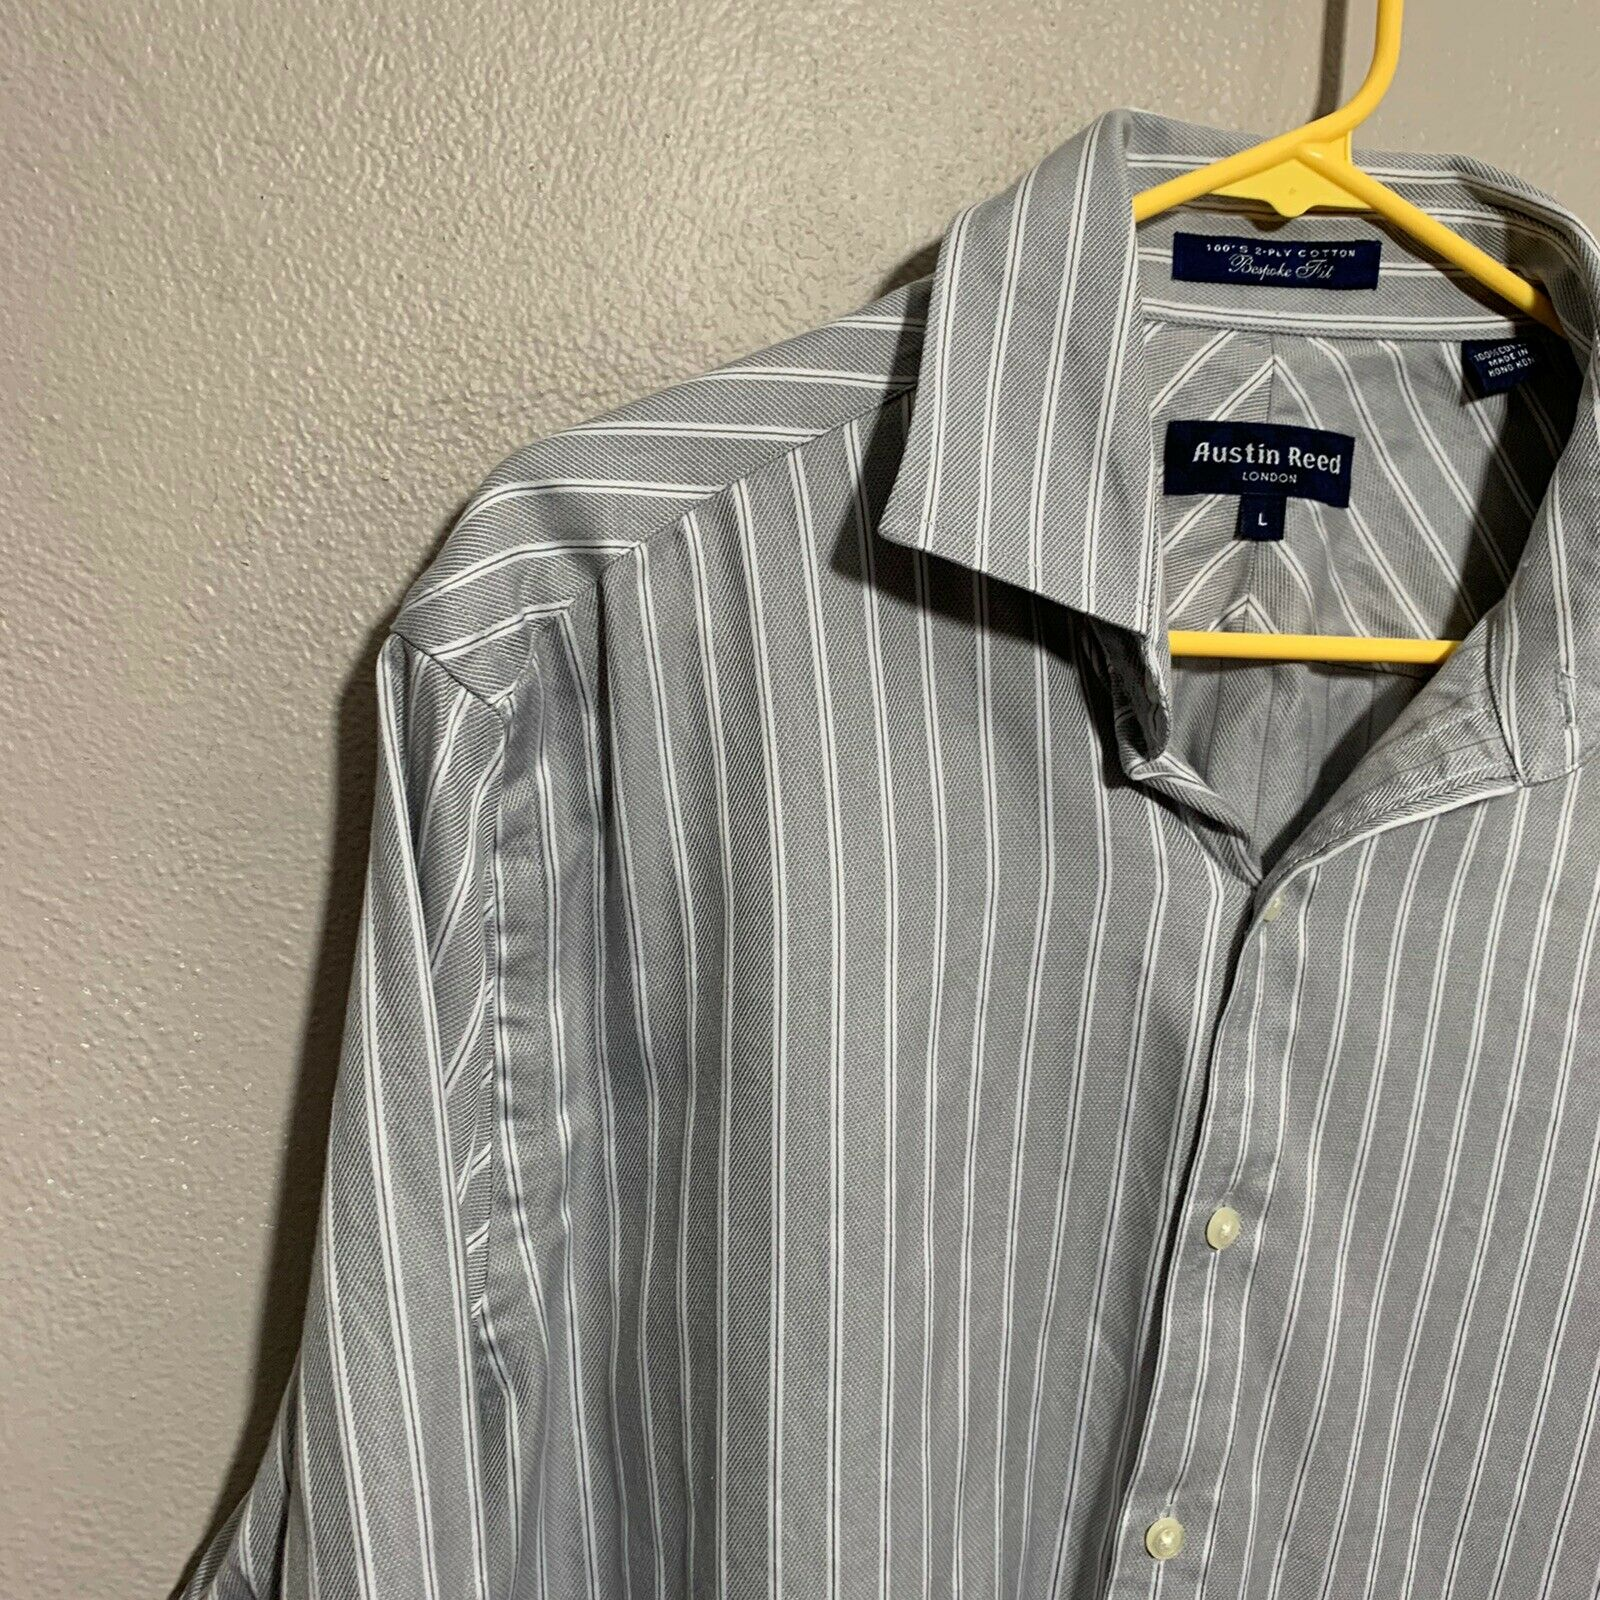 Austin Reed London Mens Shirt 100 Cotton Bespoke Fit Gem